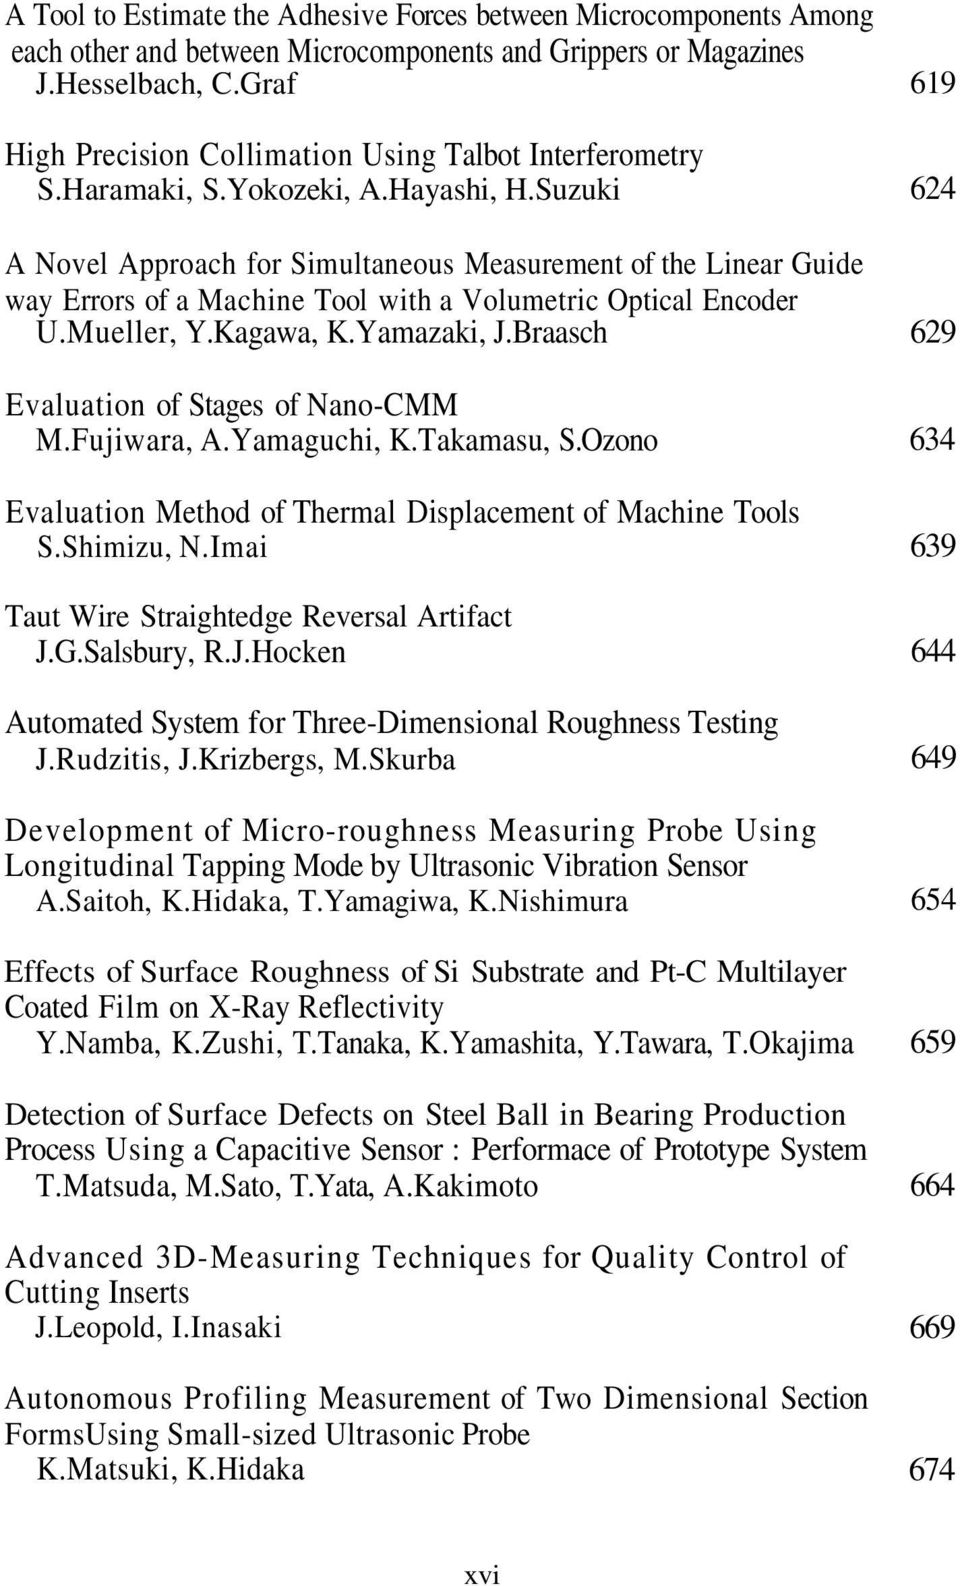 Suzuki A Novel Approach for Simultaneous Measurement of the Linear Guide way Errors of a Machine Tool with a Volumetric Optical Encoder U.Mueller, Y.Kagawa, K.Yamazaki, J.